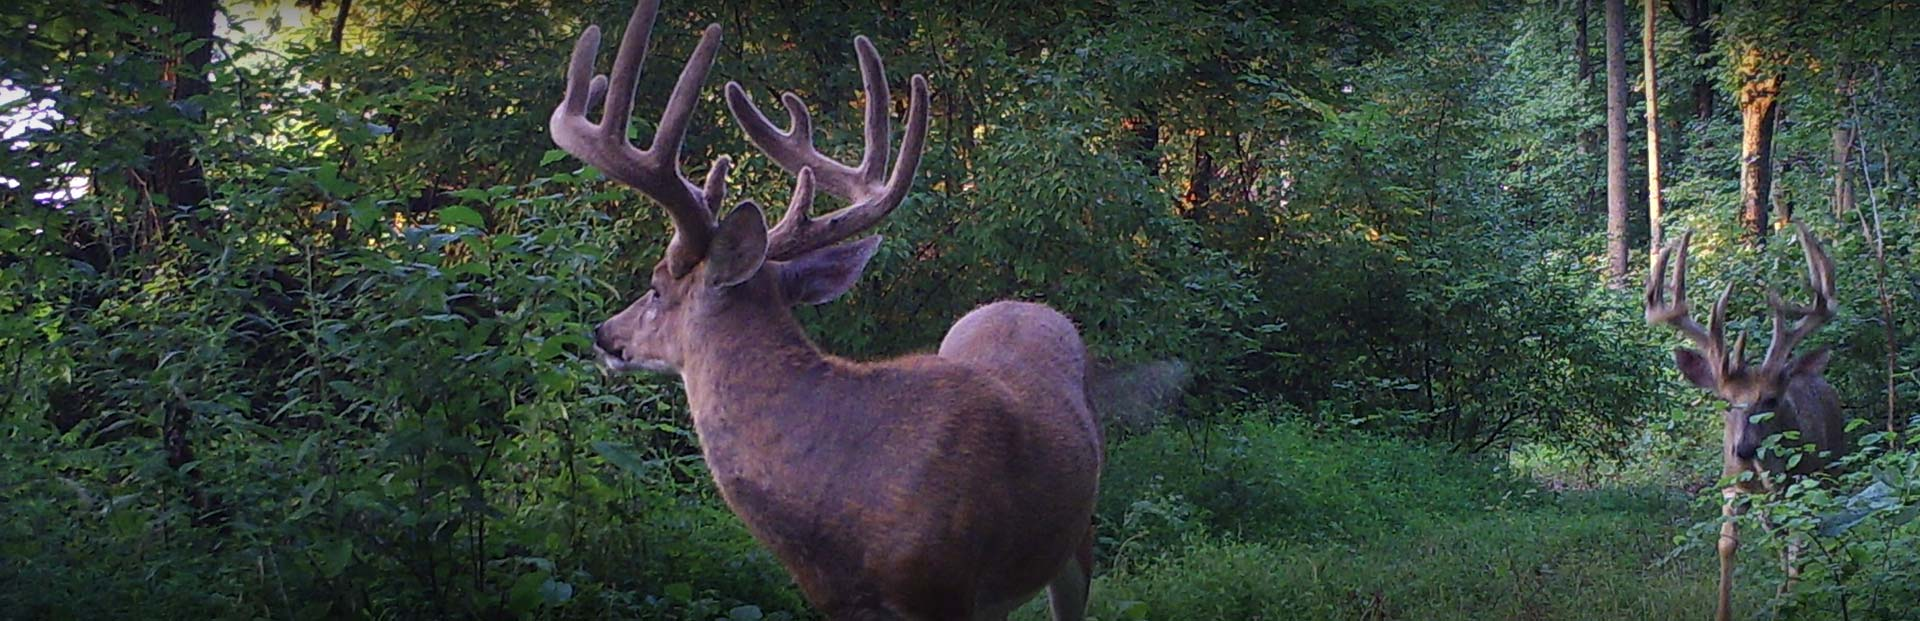 Illinois Ohio Valley Trophy Hunt - Blog